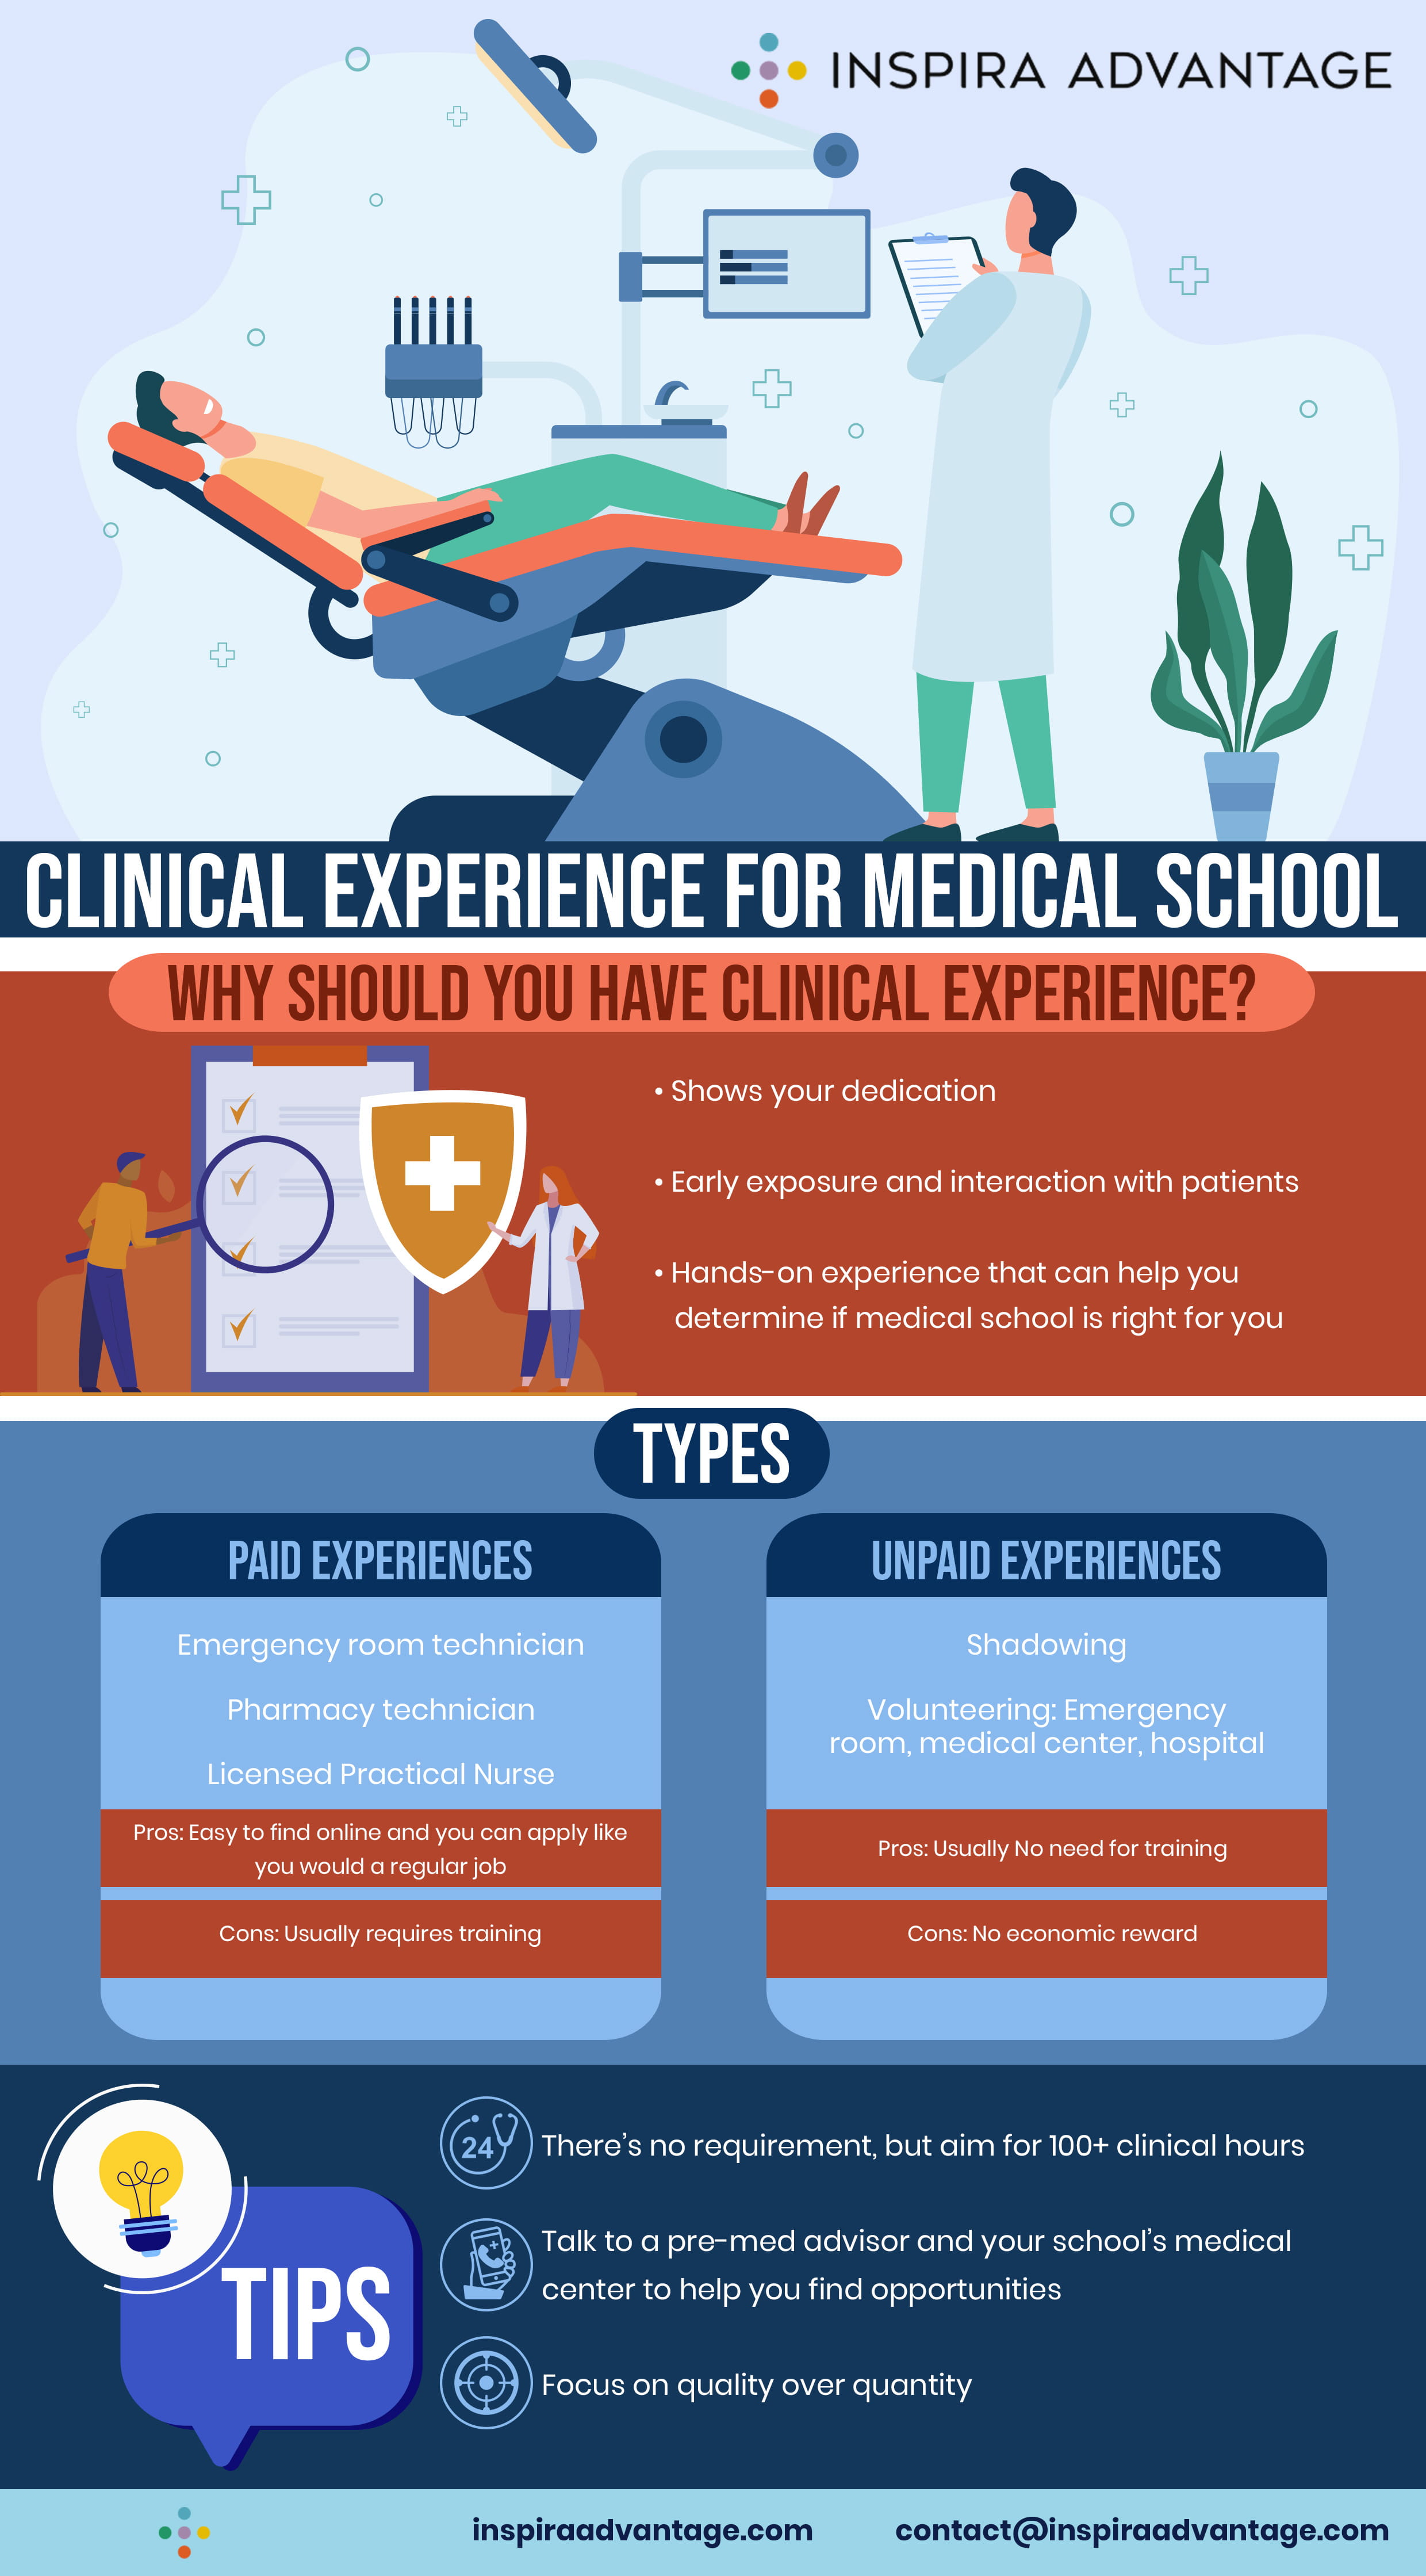 Why you should have clinical experience for medical school